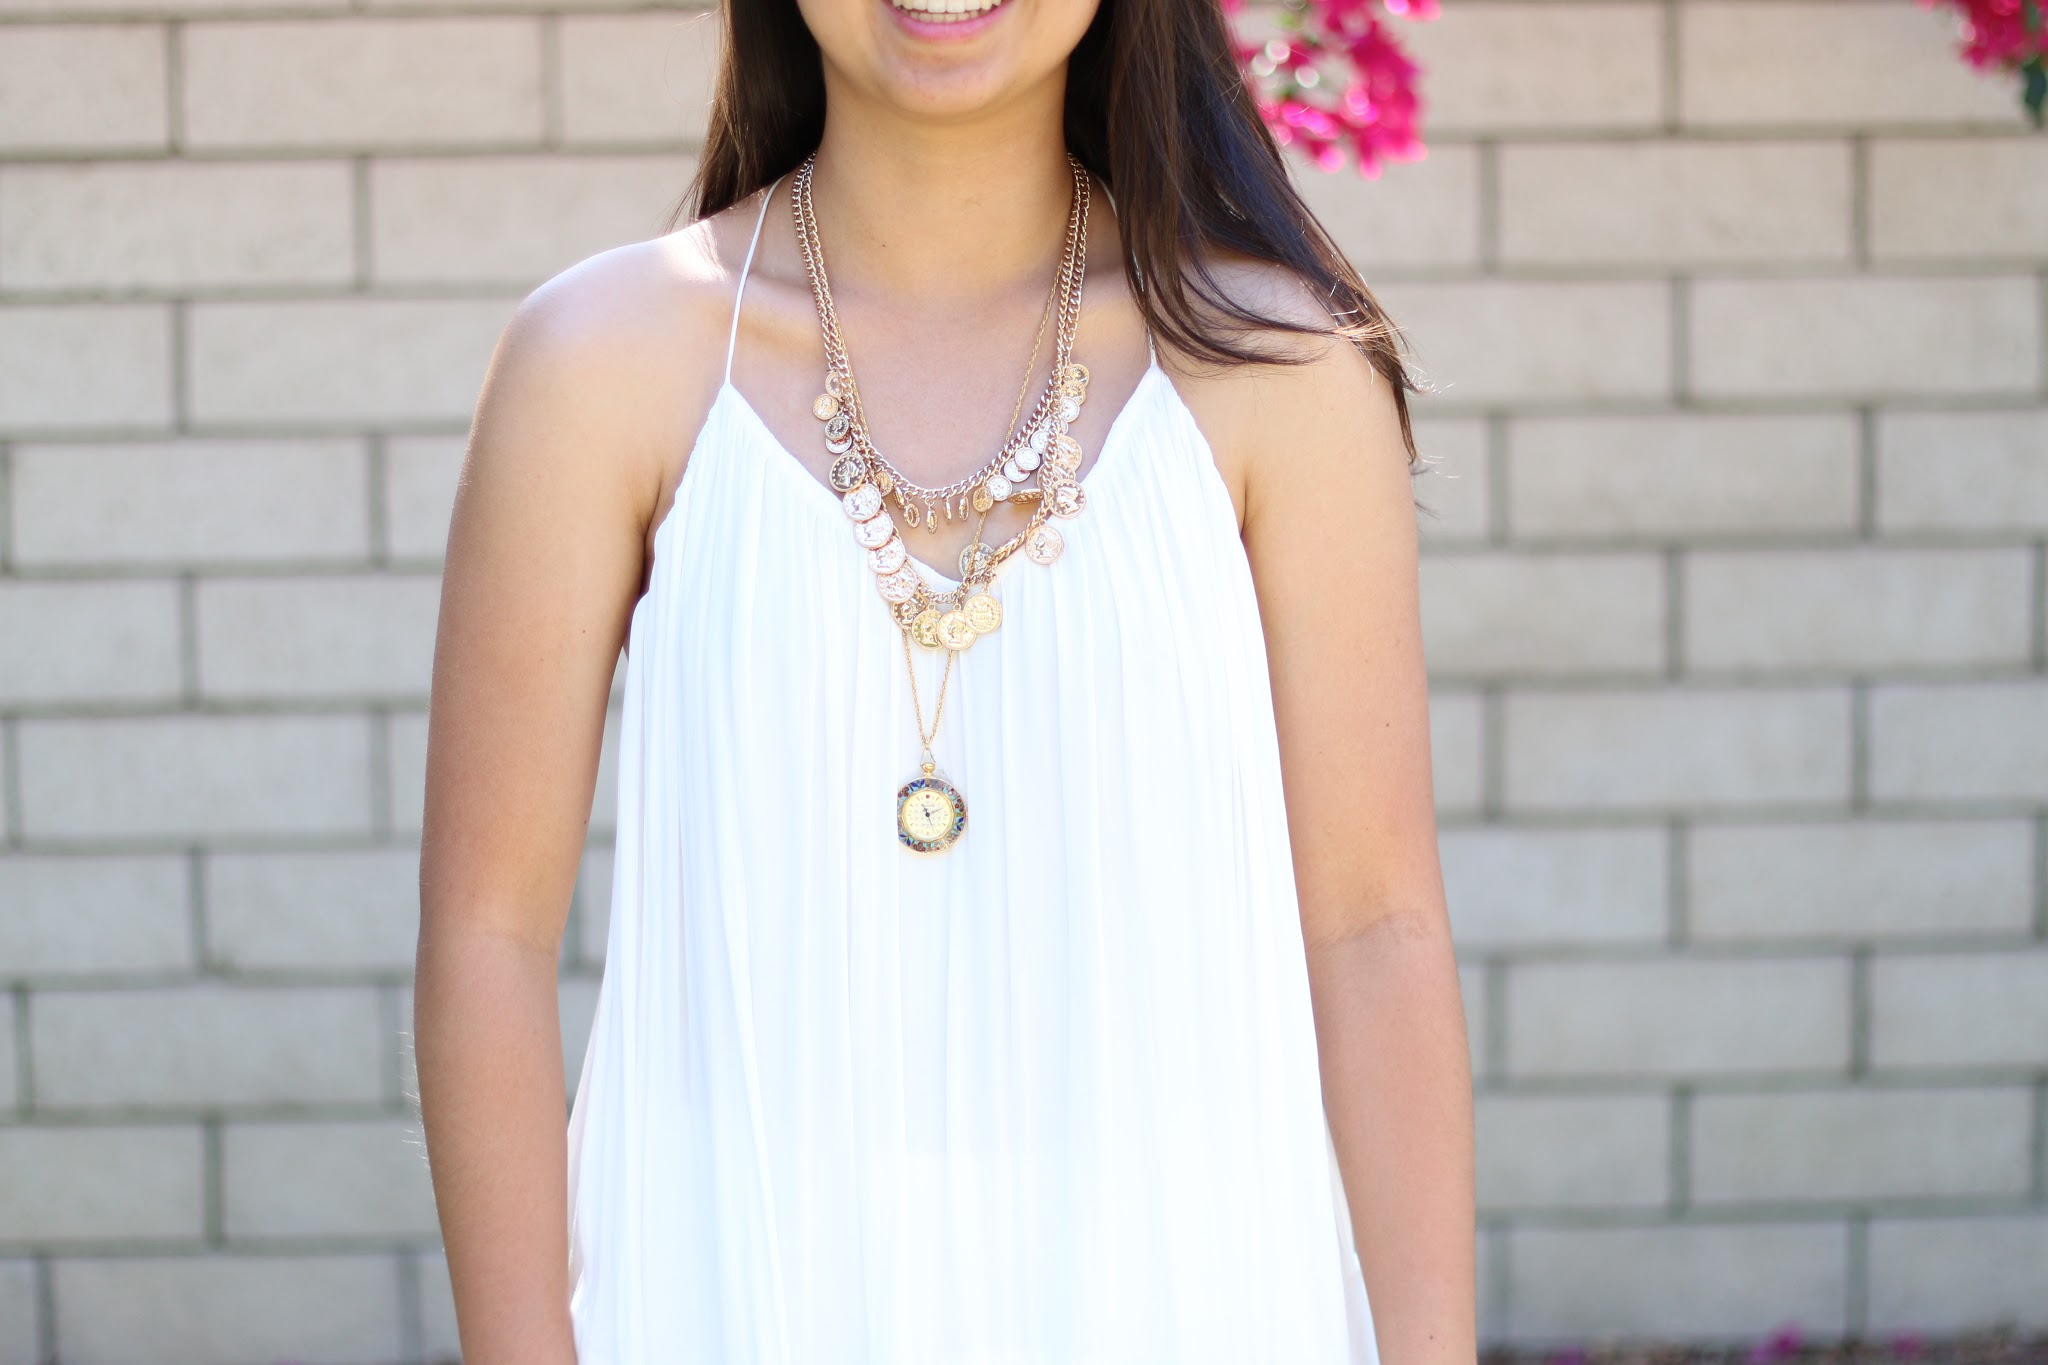 outfit of the day, style, dress, forever 21, tumblr, fashion blogger, layered necklaces